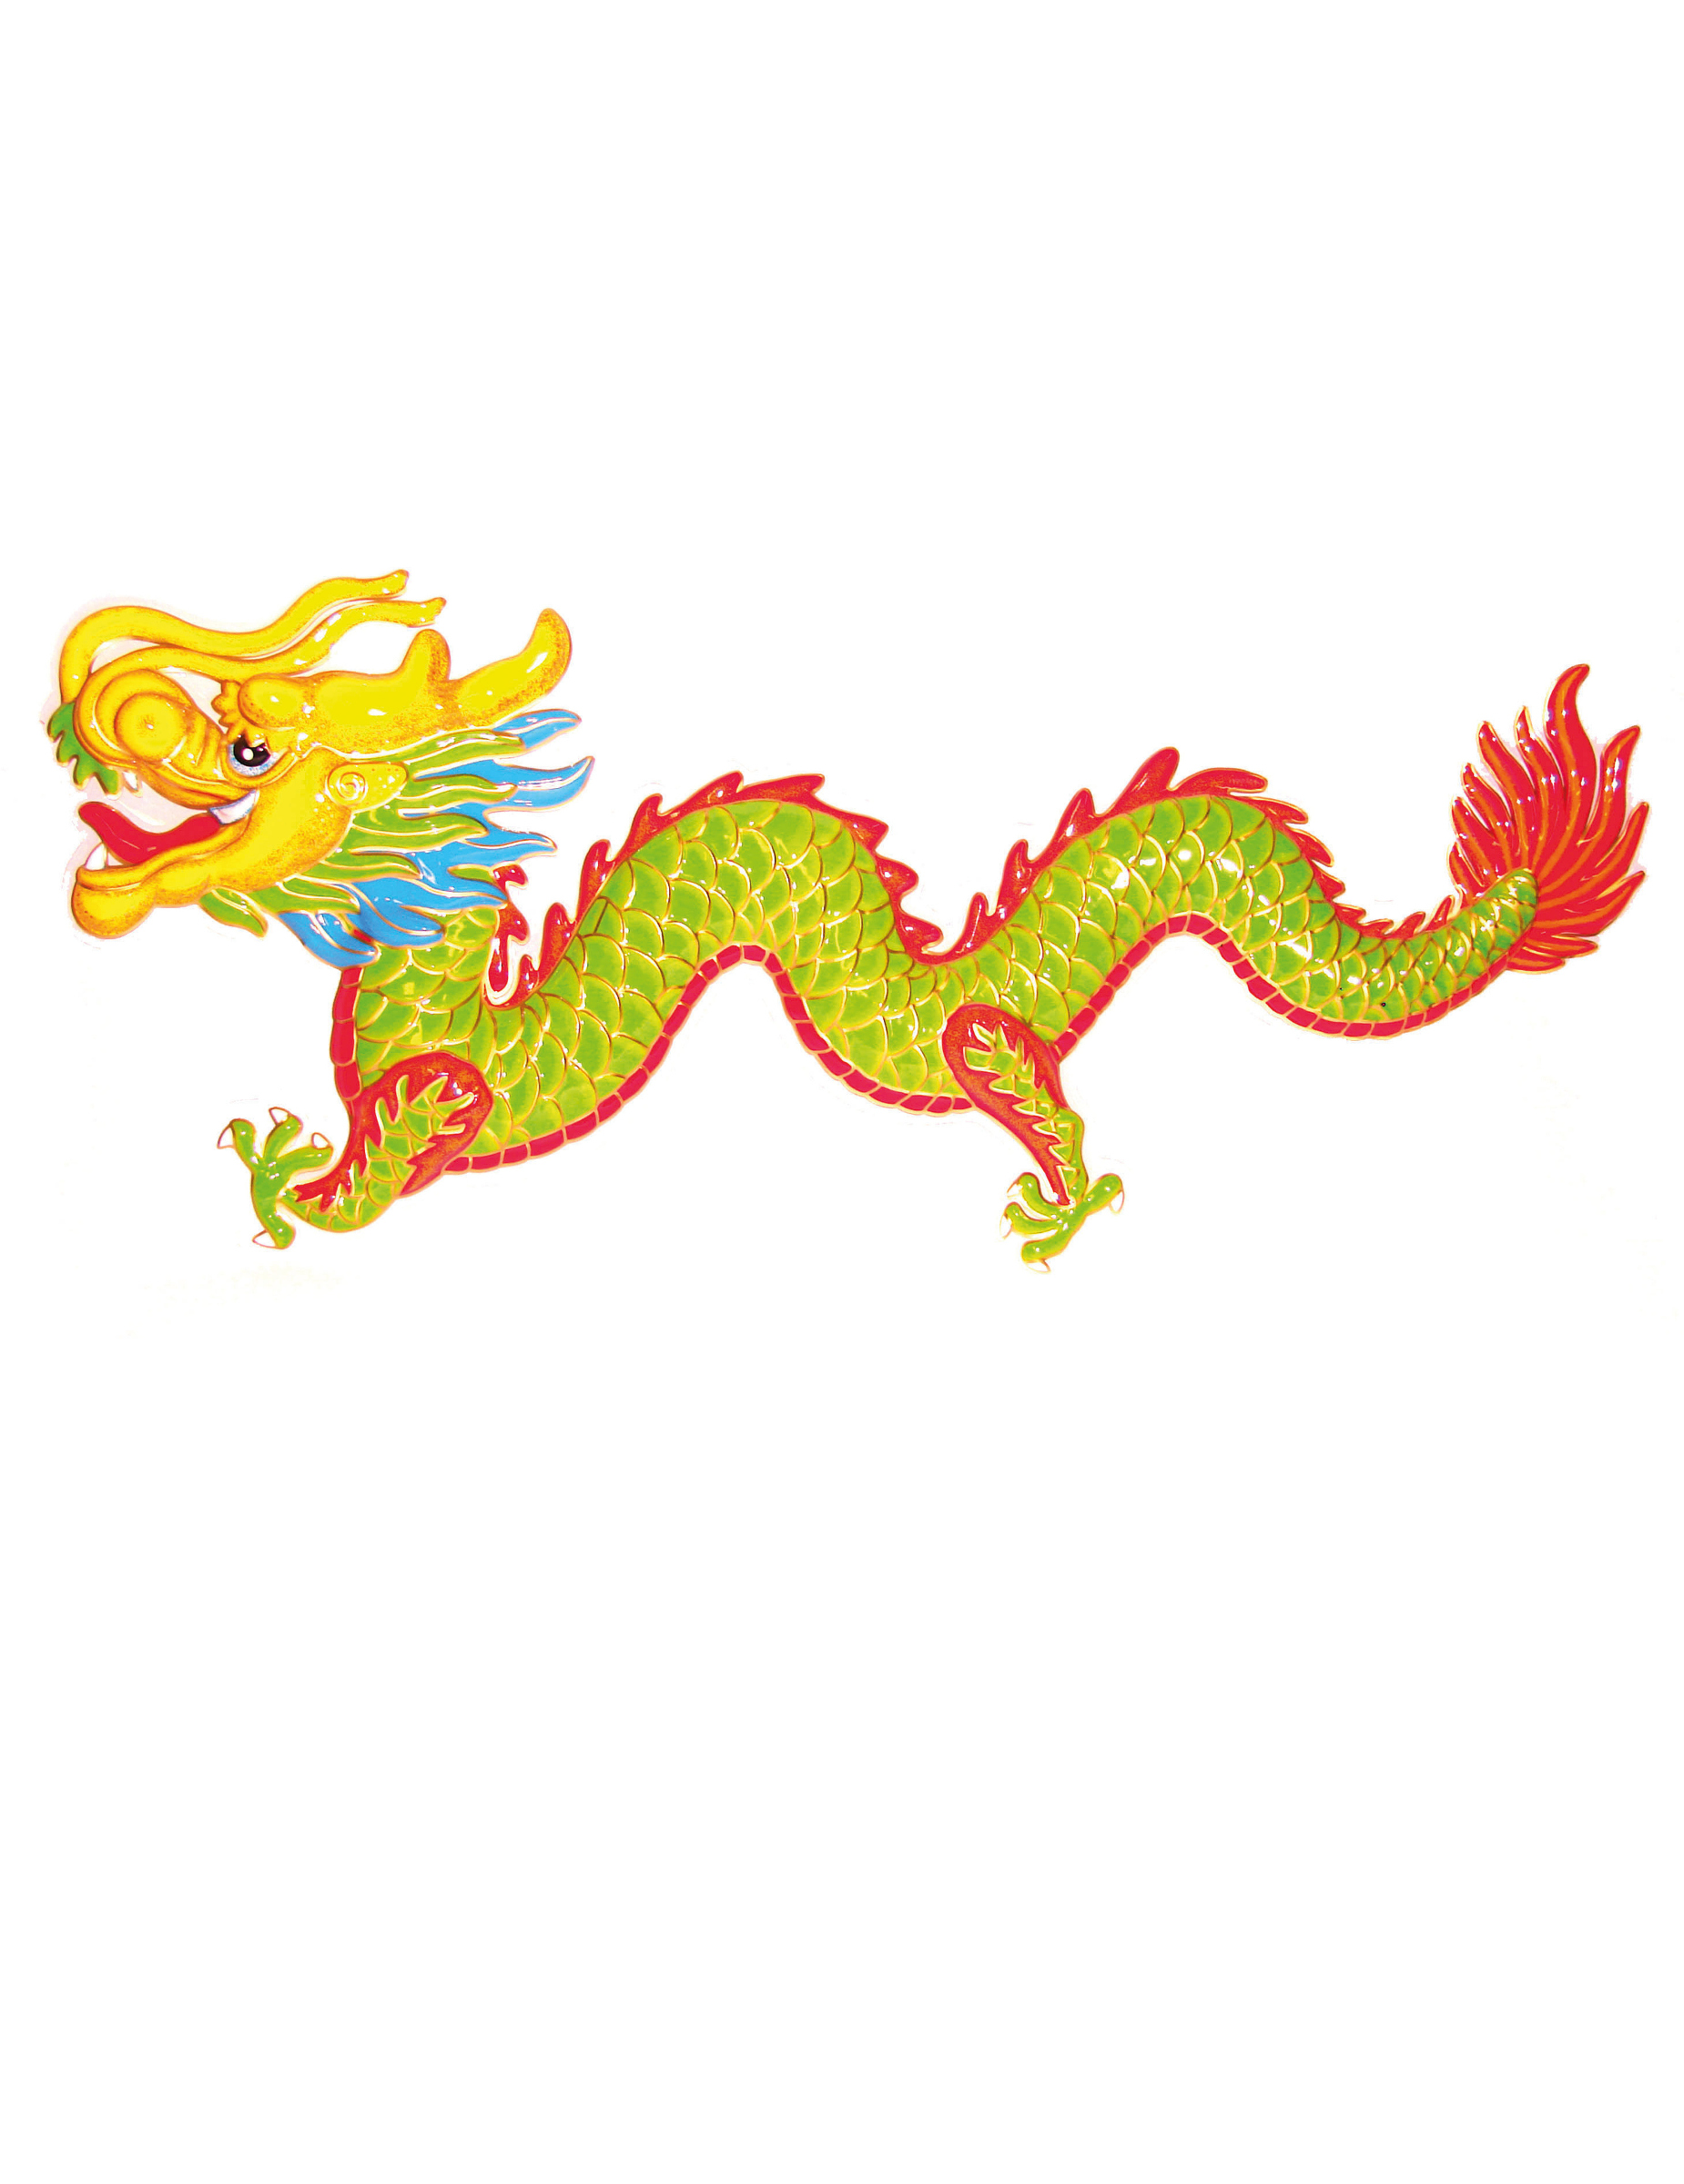 D coration dragon nouvel an chinois 1m d coration - Decoration nouvel an chinois ...